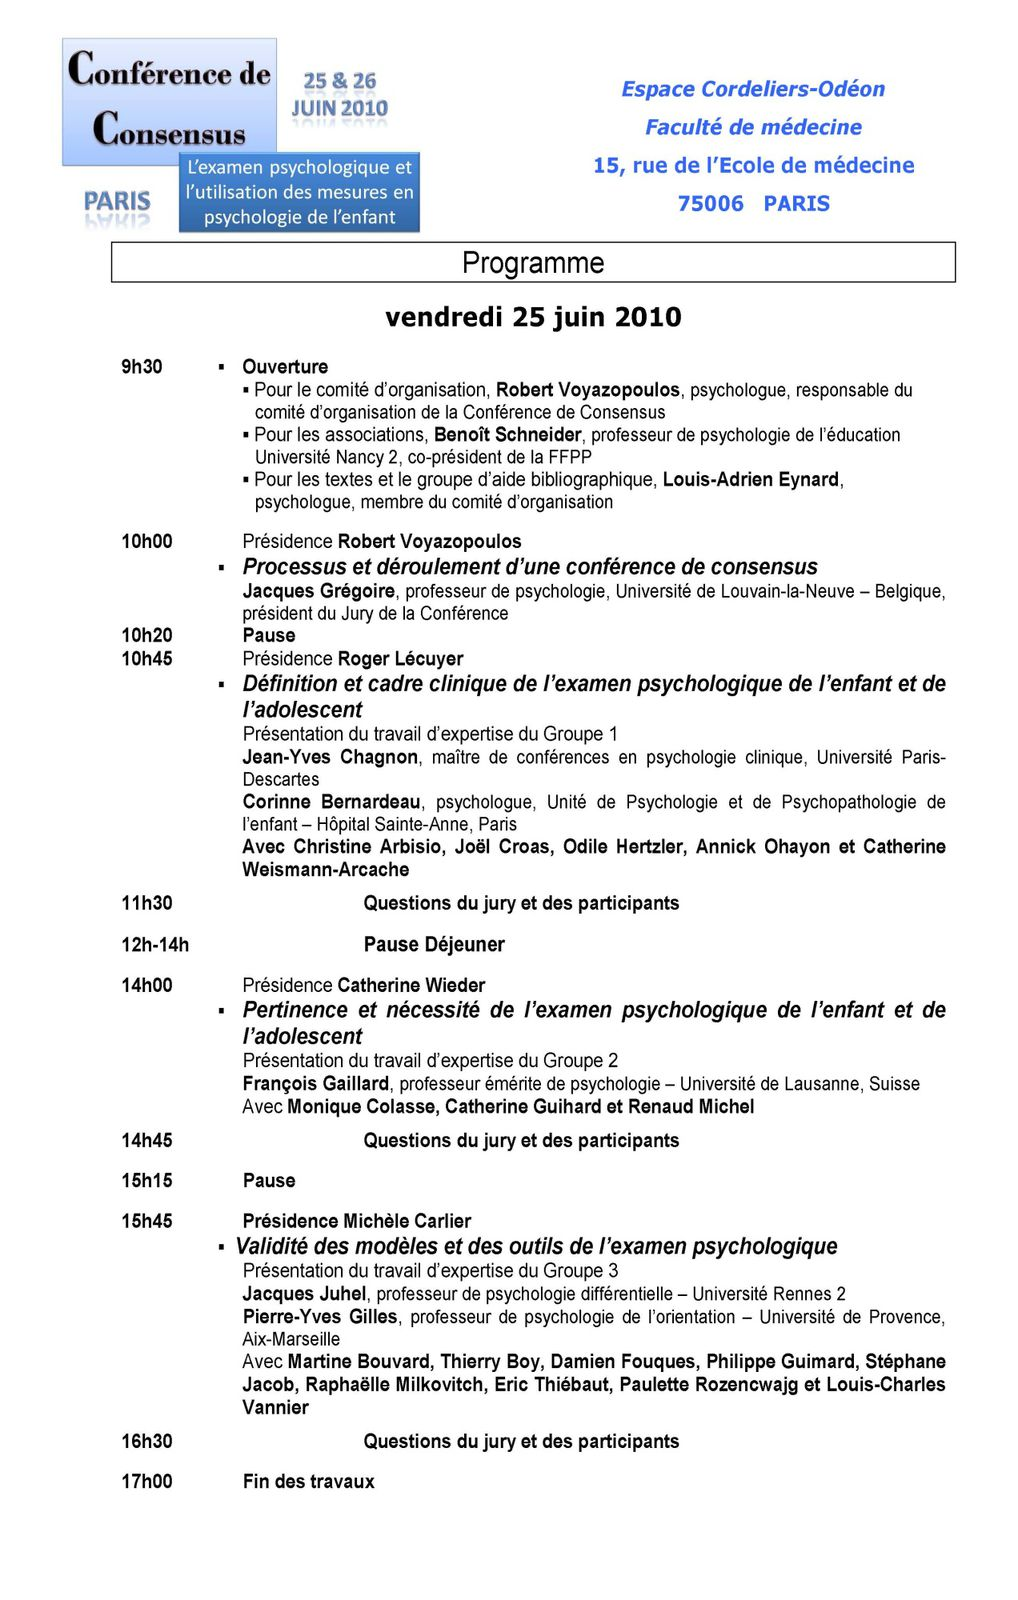 Programme-colloque-CdC-18-06-10--2-_Page_1.jpg